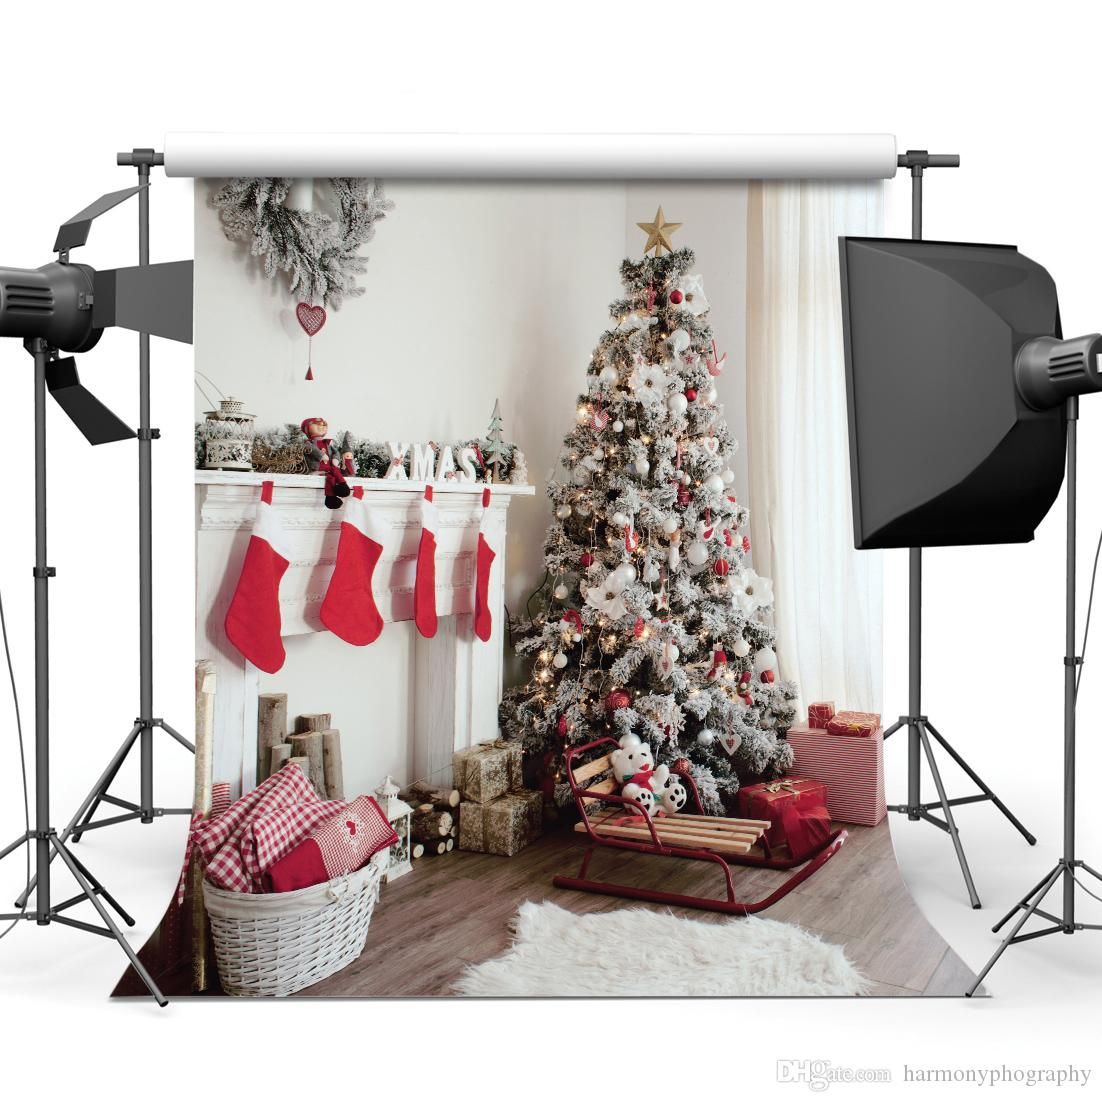 Christmas 5X7ft camera fotografica backdrops vinyl cloth photography backgrounds wedding children baby backdrop for photo studio 10294